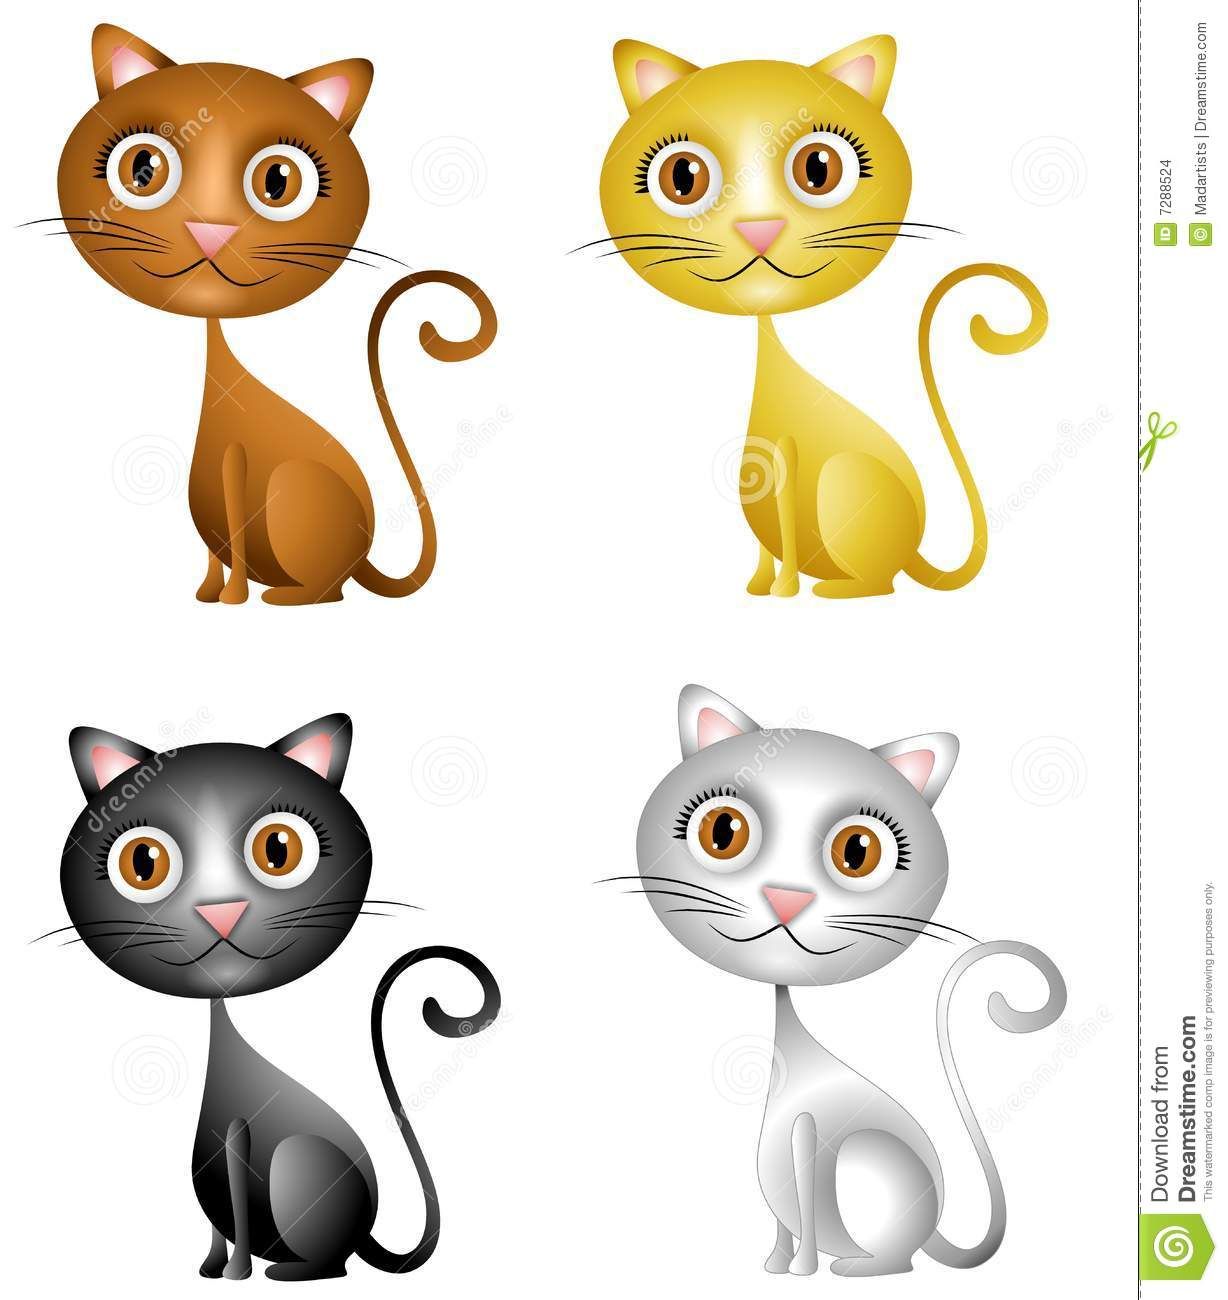 cute kittens clip art stock illustration illustration of white rh dreamstime com Kick Clip Art Cute Kitten Clip Art